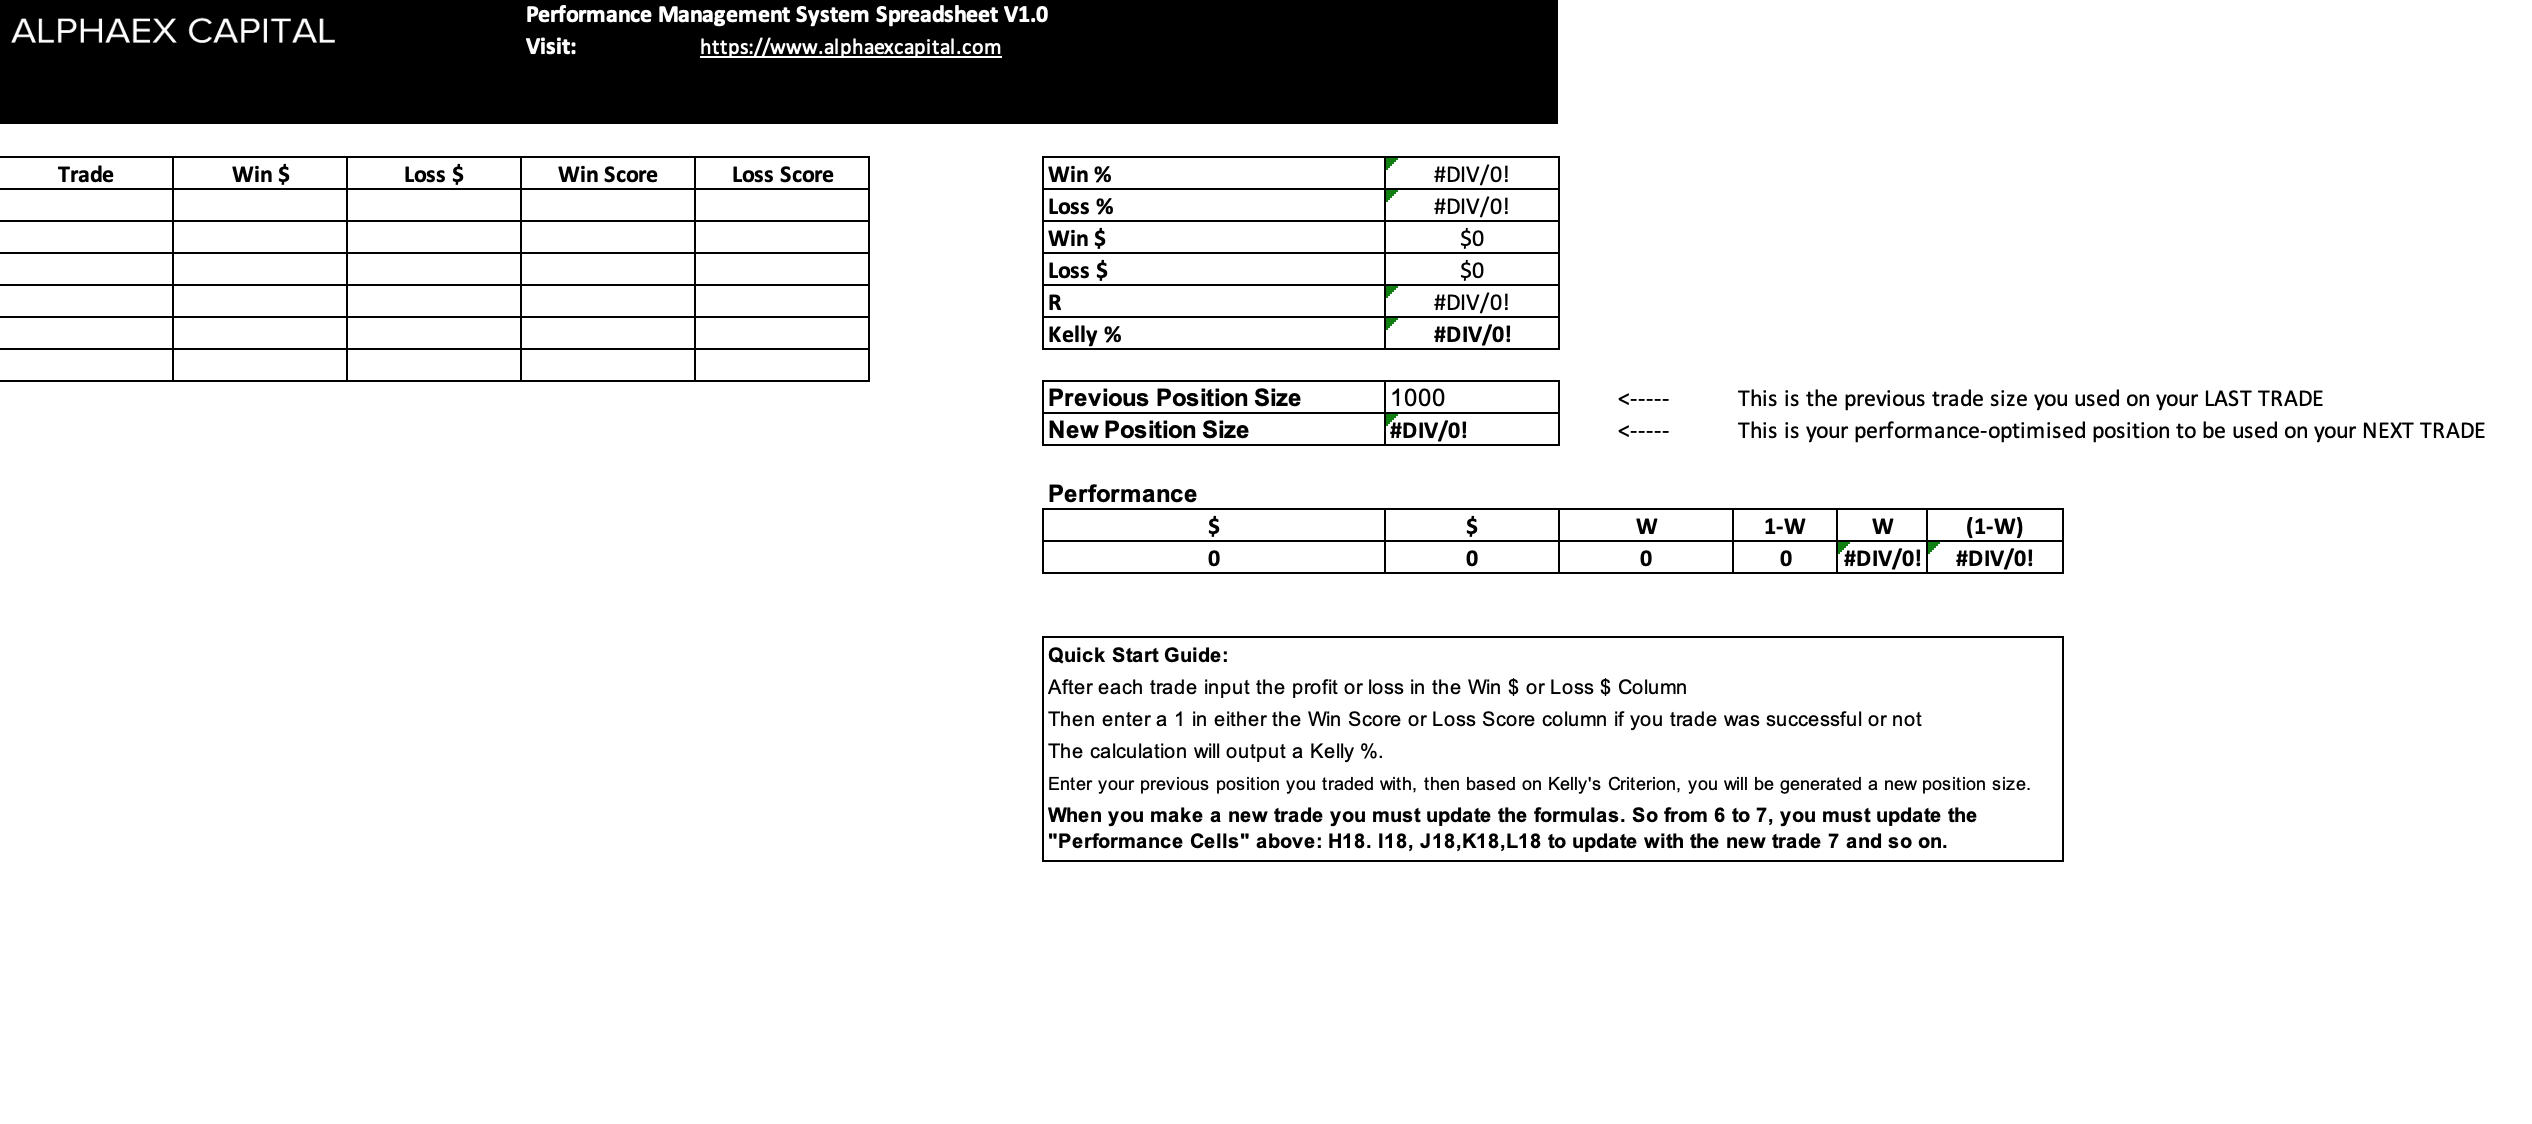 Alphaex Capital Performance System Dashboard - Kelly's Criterion Example